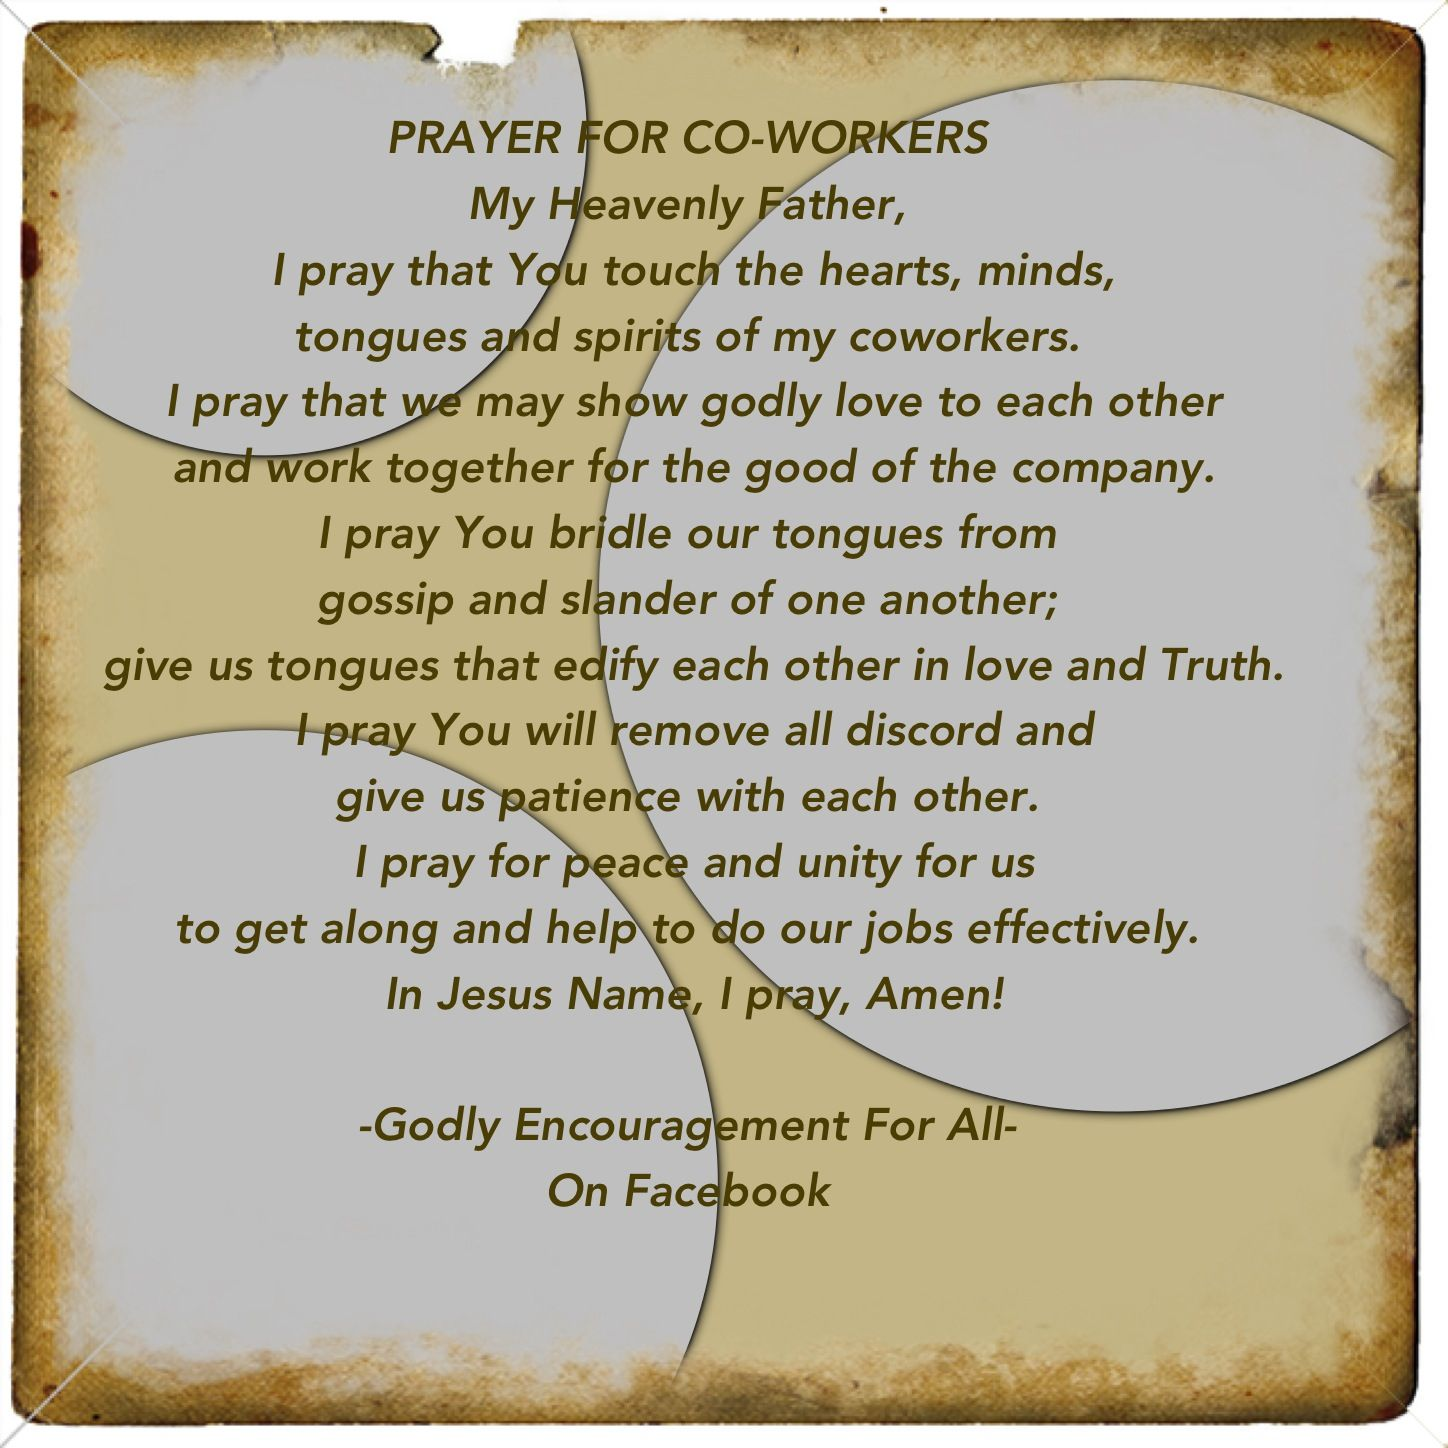 Prayer for coworkers Prayers, Prayer quotes, Daily prayer